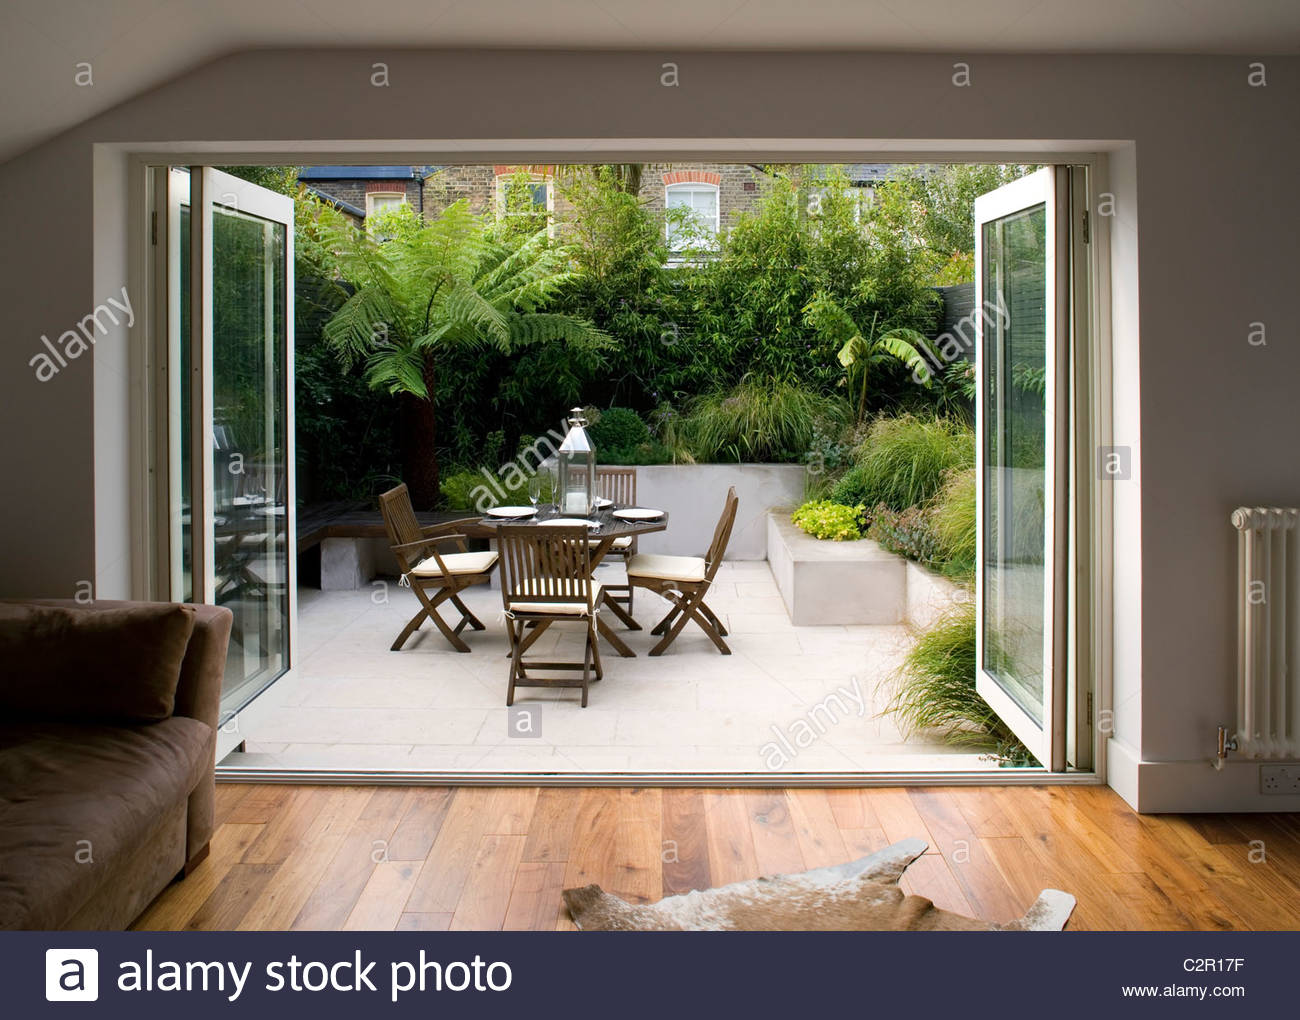 Living Room With Bi fold Doors Opening On To Patio